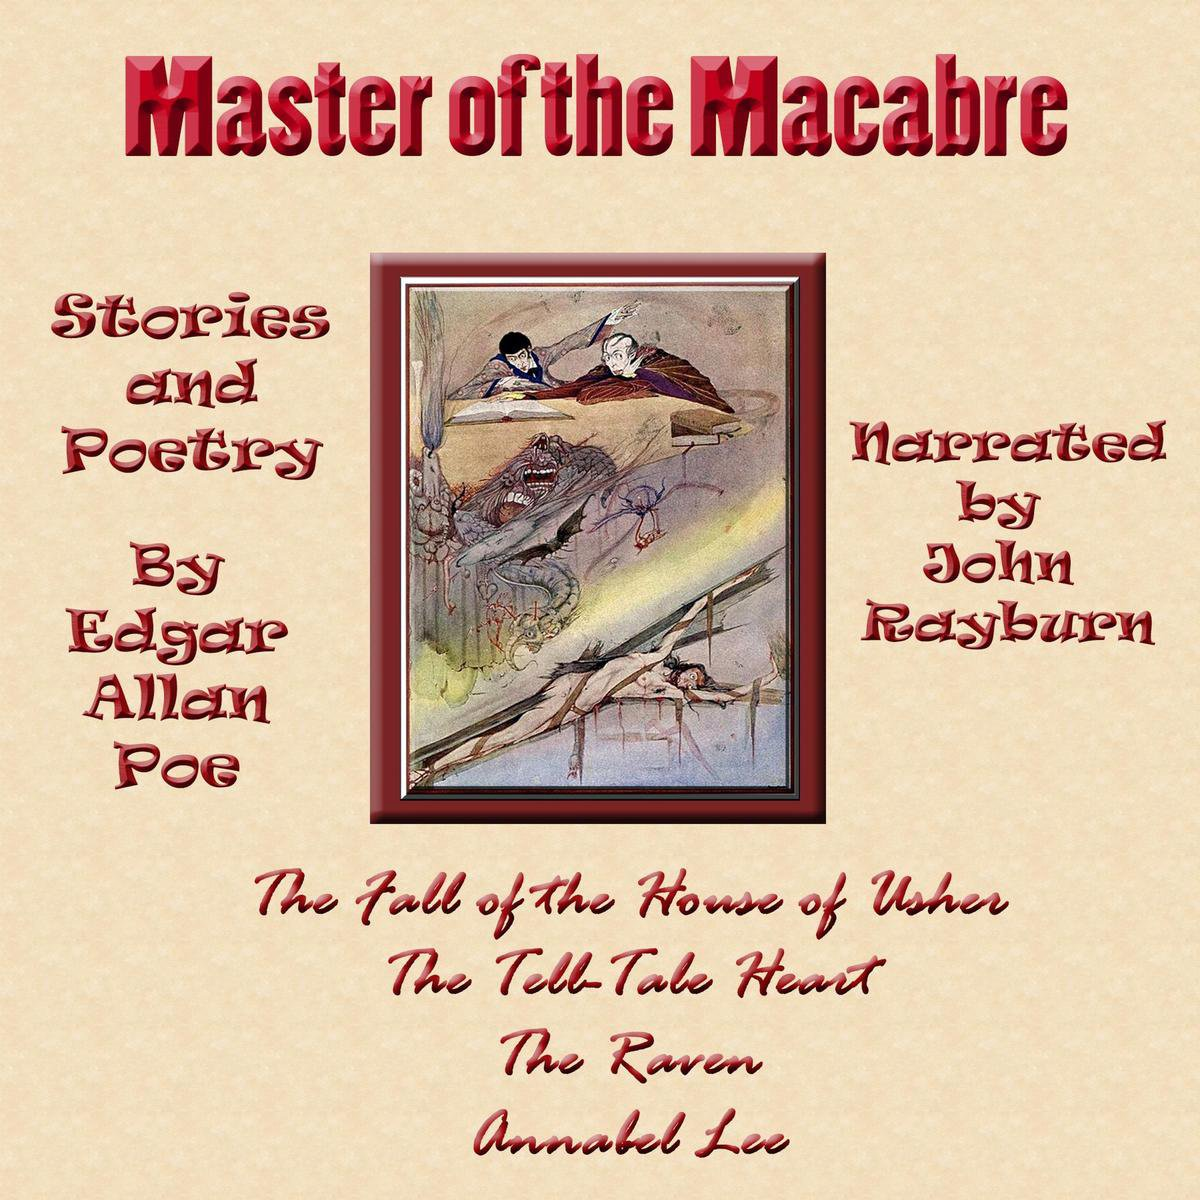 Master of the Macabre